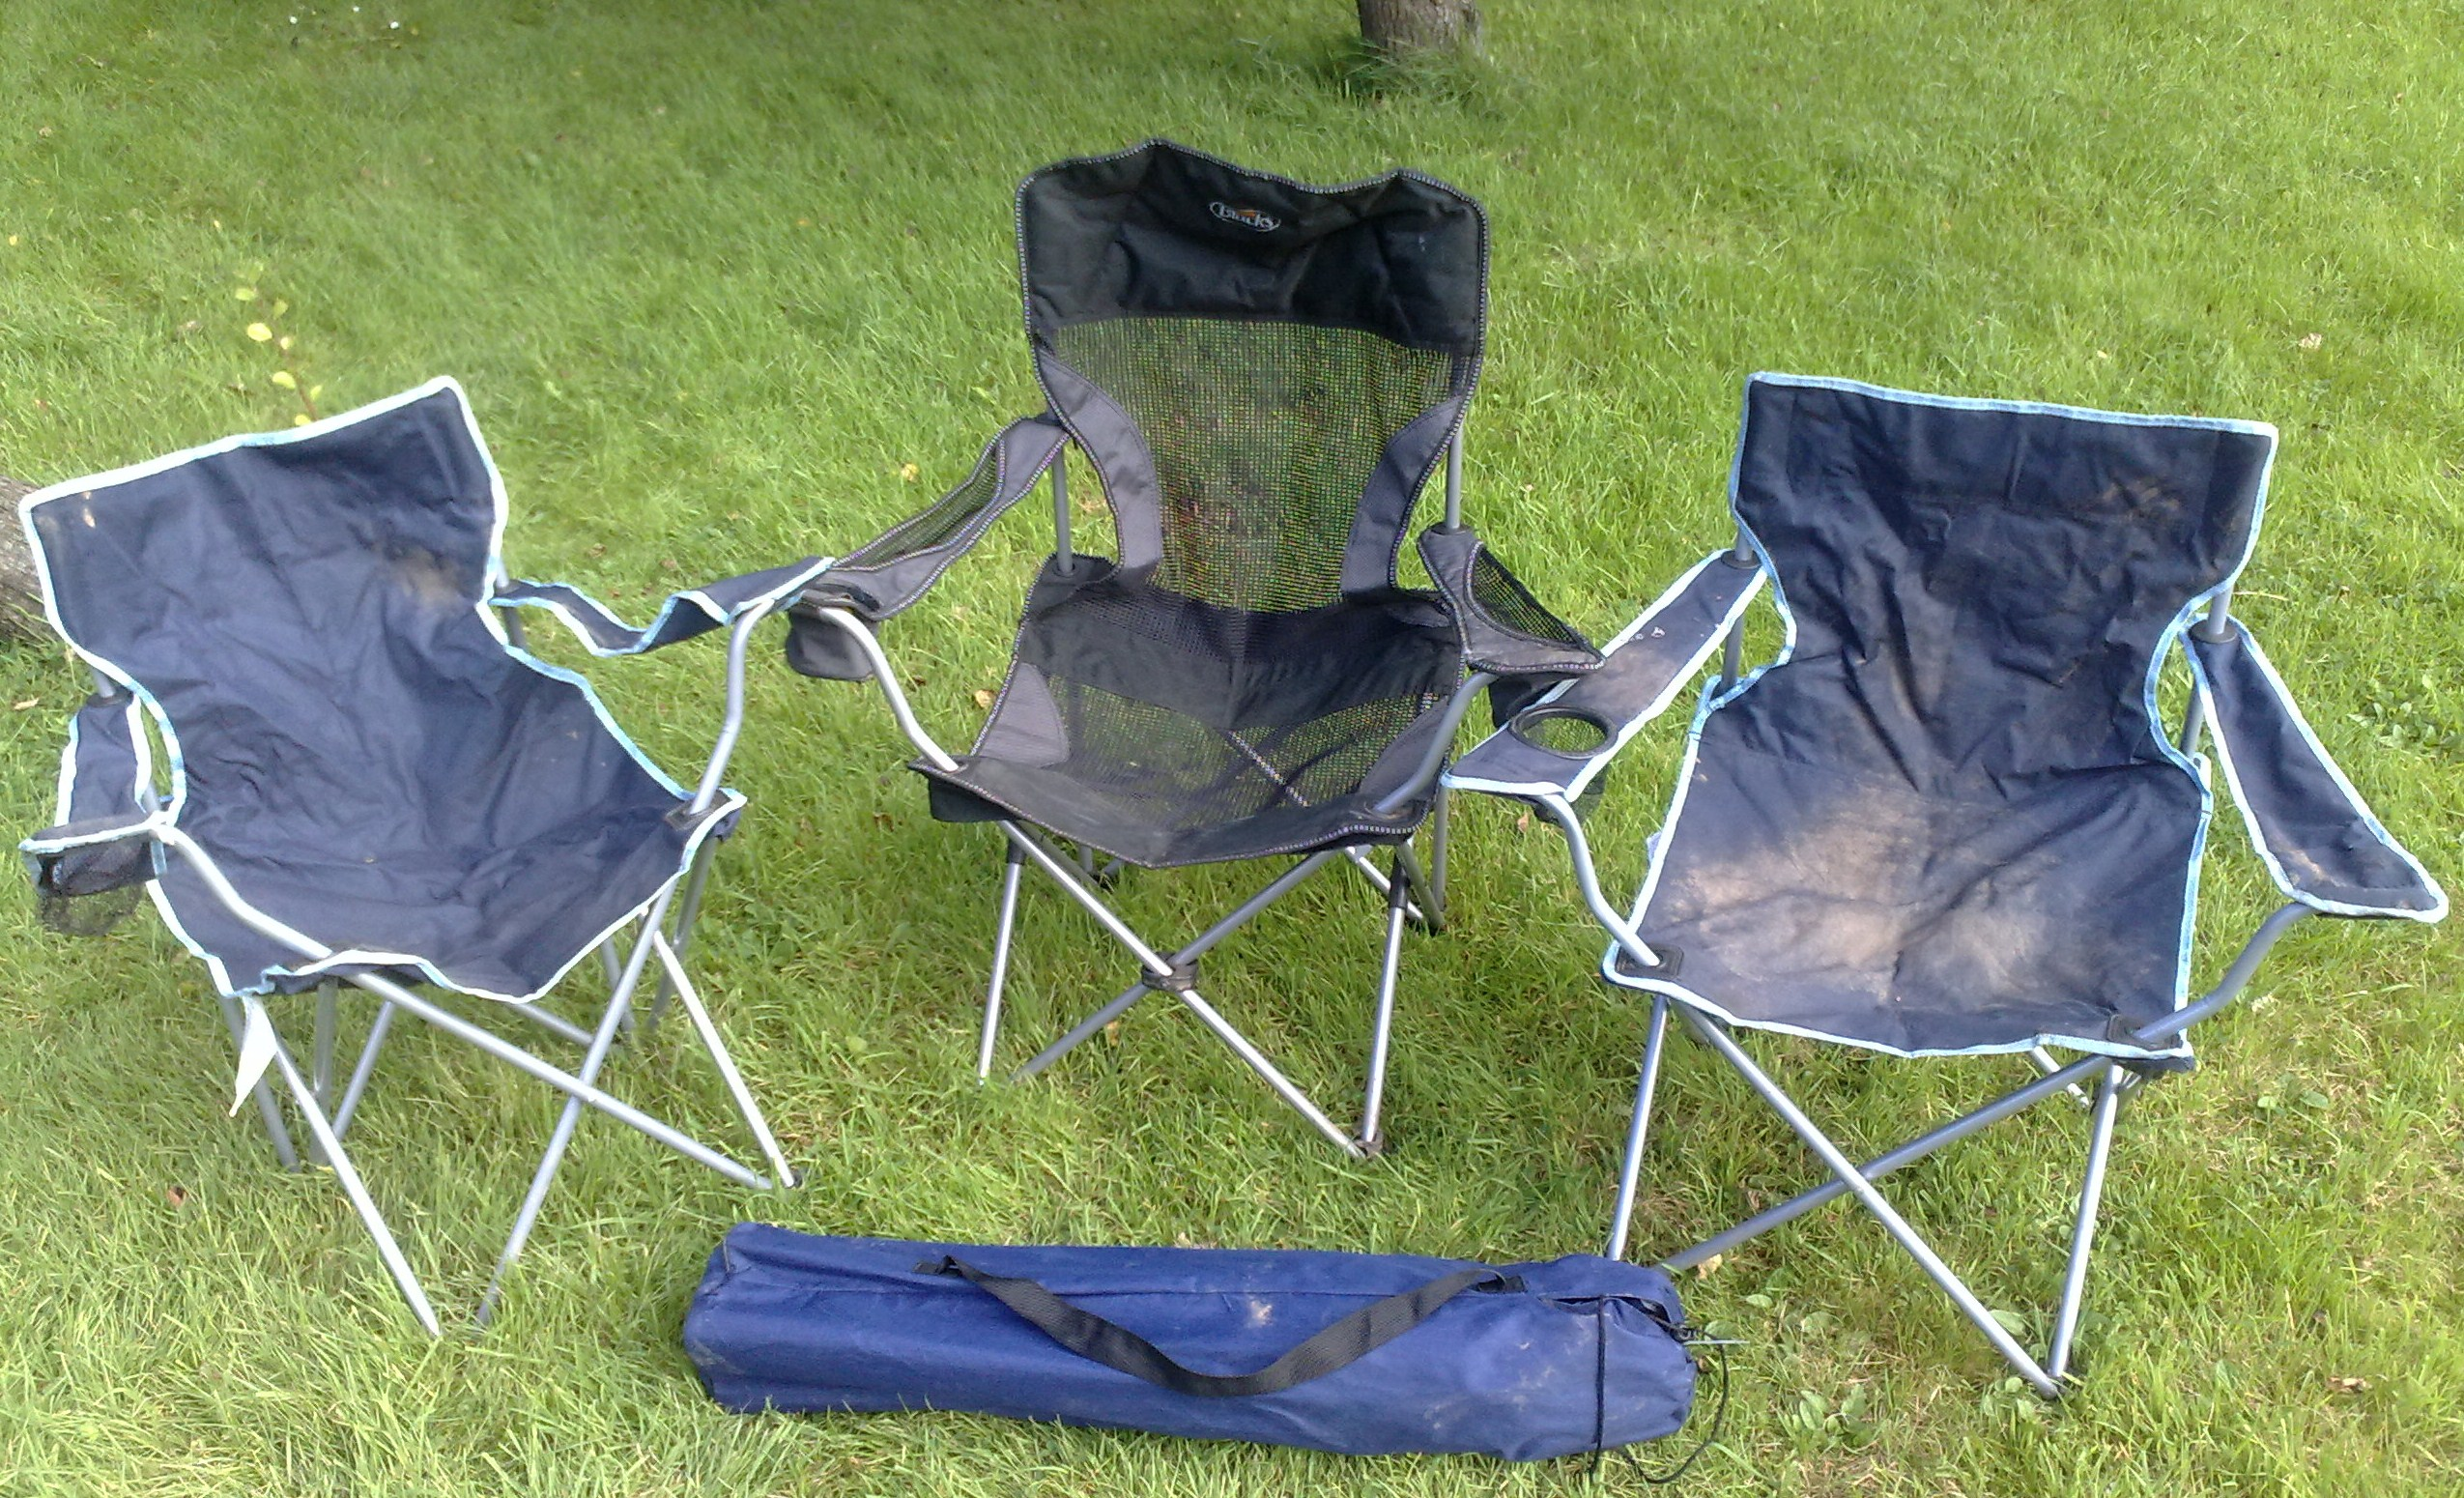 Lightweight camping chairs - Lightweight Fold Away Camping Chairs Camping Equipment Hire R Leisure Hire Ltd 01524 733540